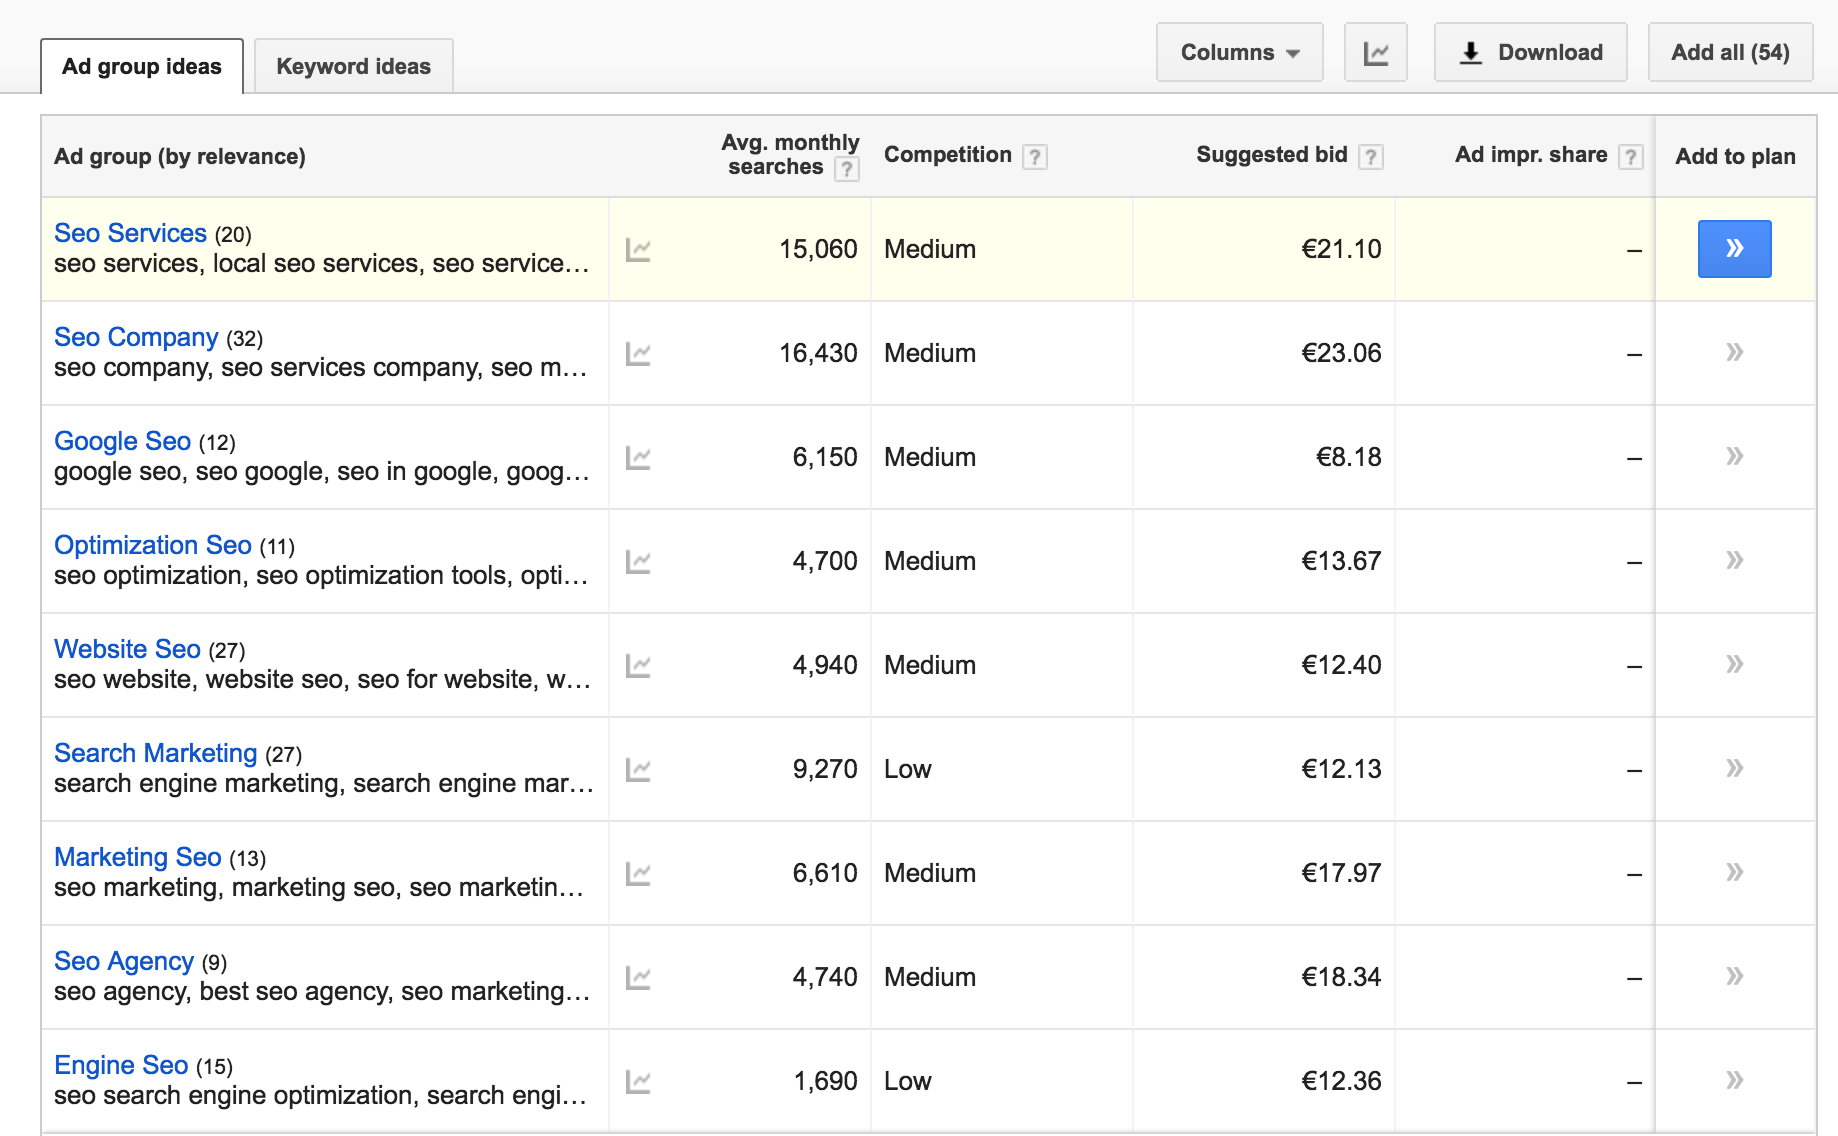 Adwords group keywords by category